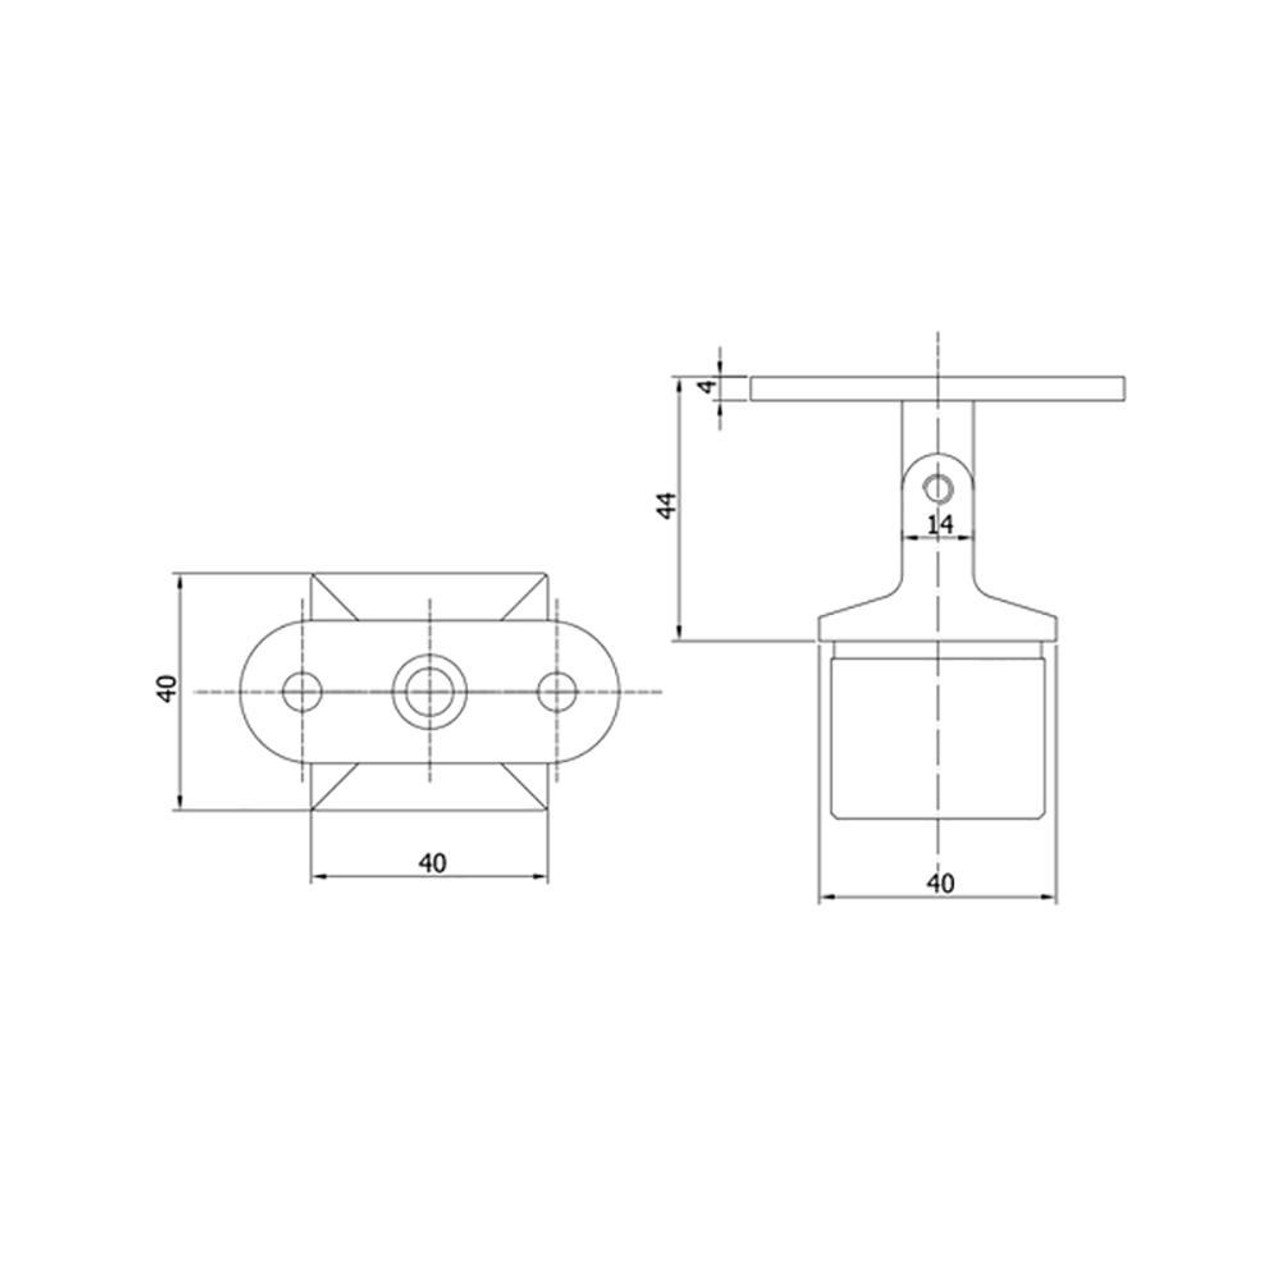 Adjustable Square Post Handrail Support ( AX20.005.031.A.SP) CADD